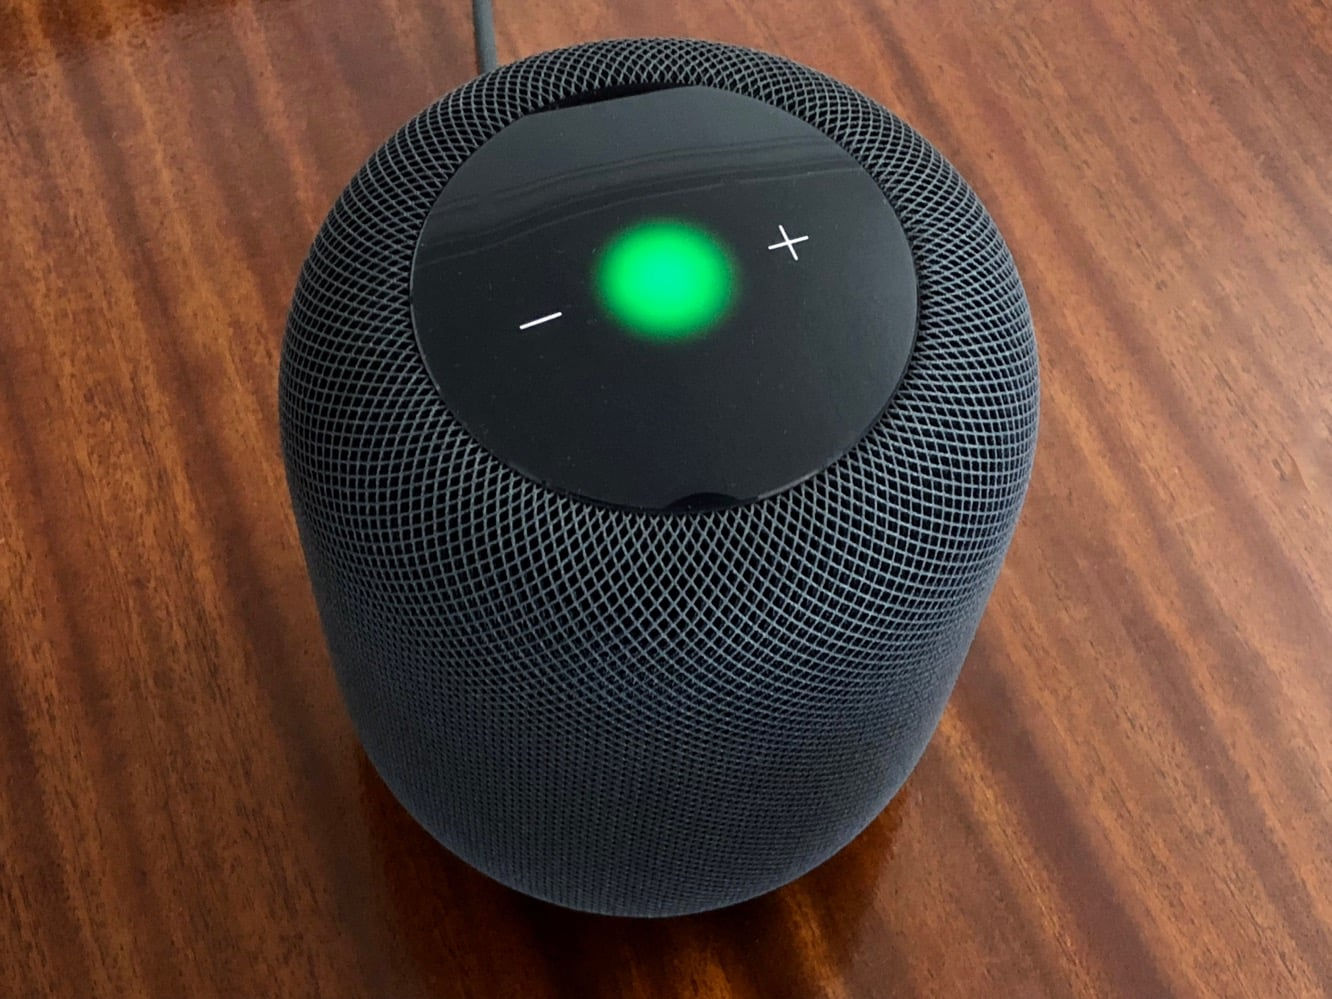 iOS 12 beta 5 points to HomePod phone call support, future dual-SIM iPhone